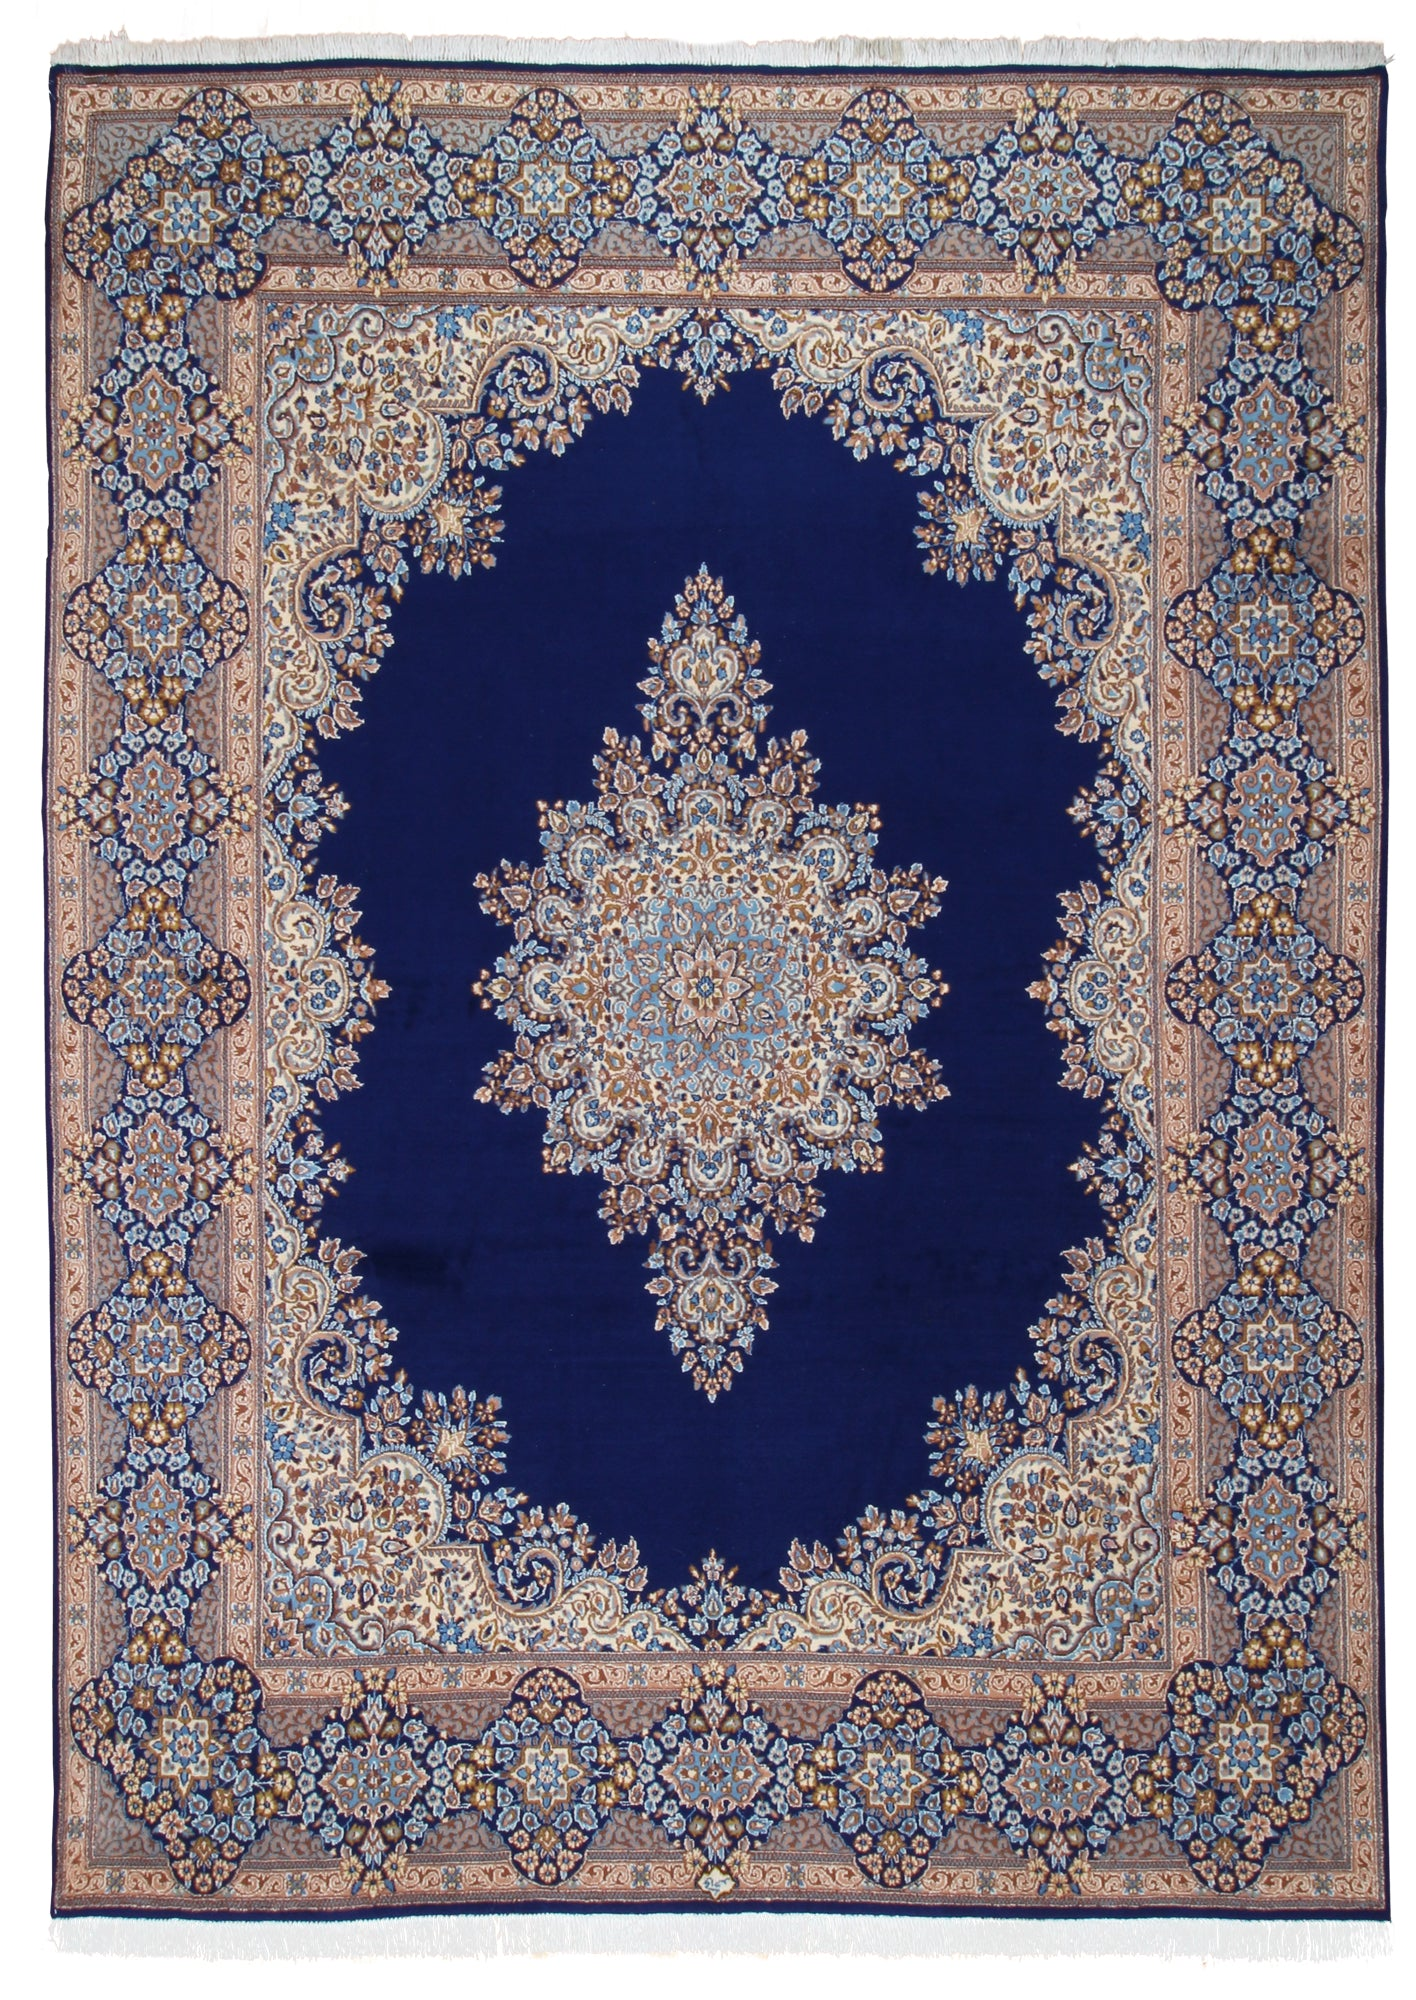 Kerman Medallion Blue-Turco Persian Rug Company Inc.